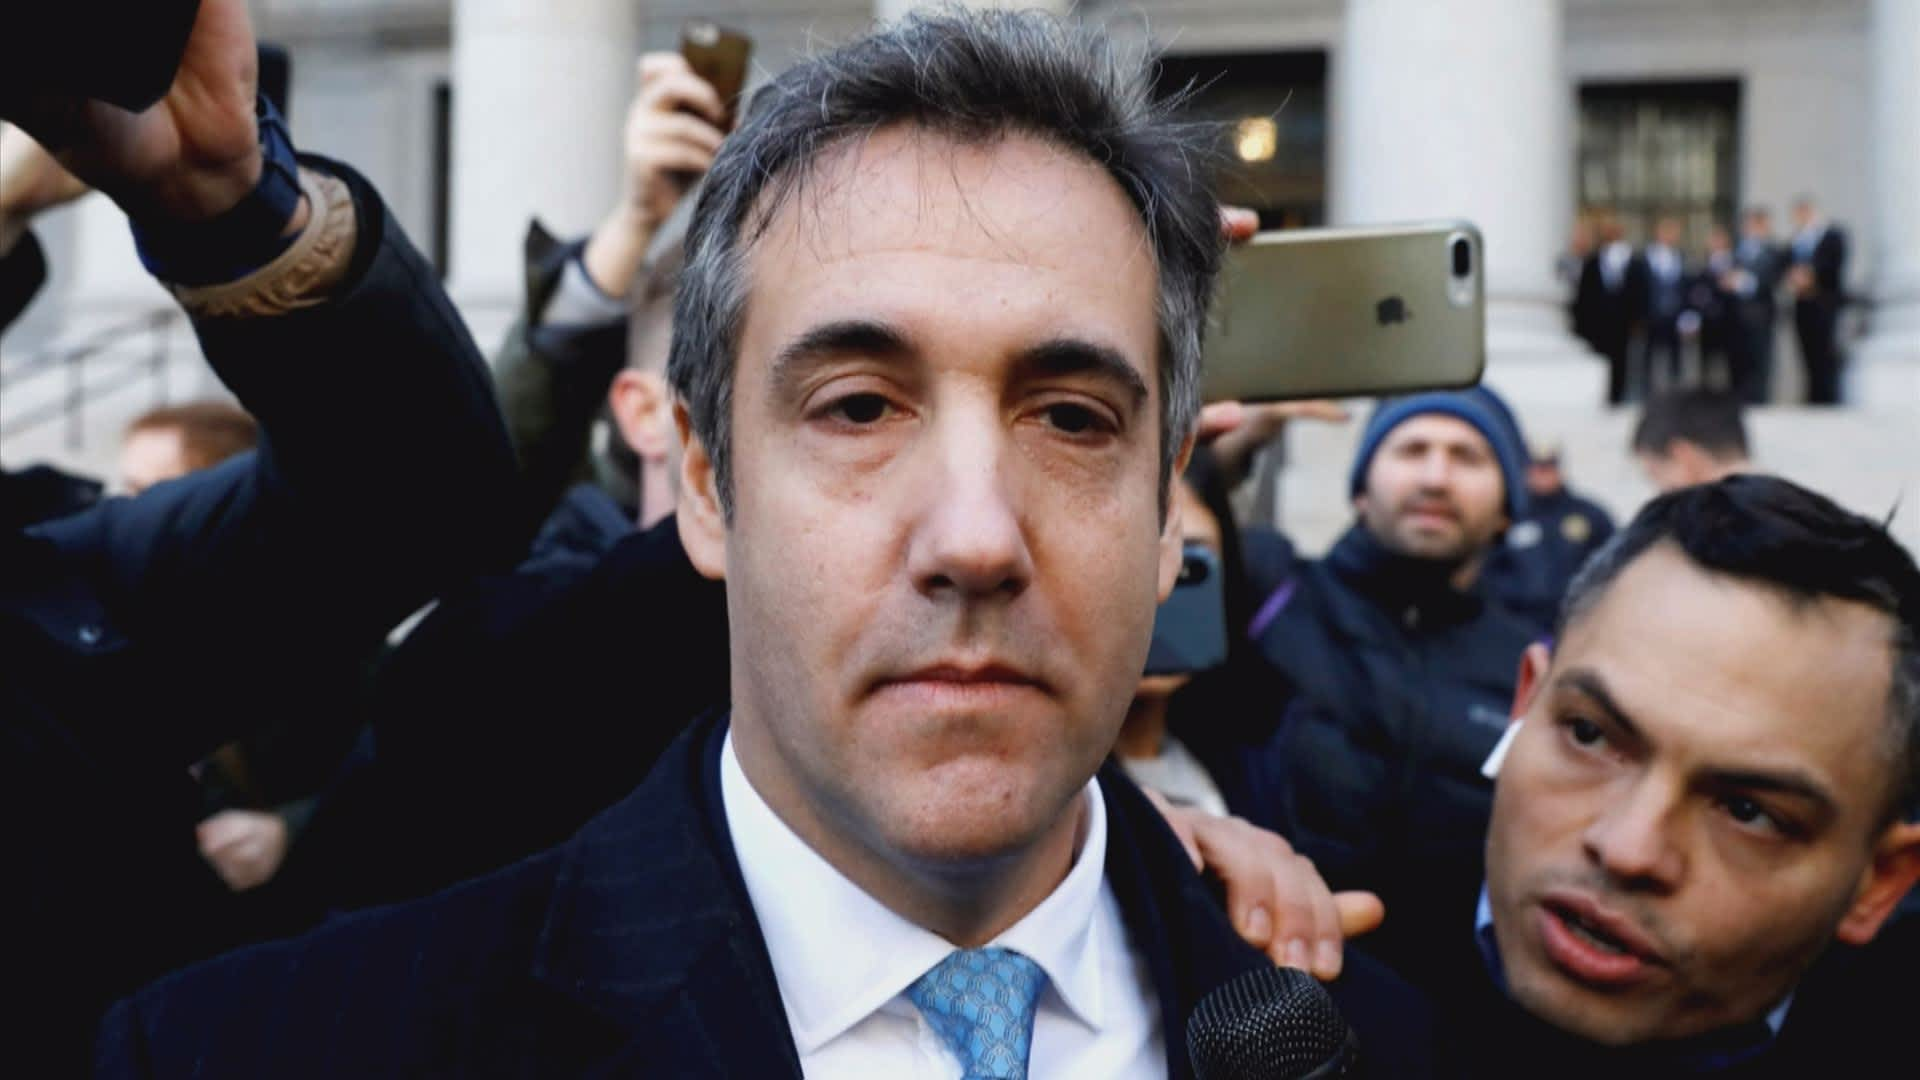 Former Trump lawyer Michael Cohen sentenced for Stormy Daniels case, Russia  project and other crimes